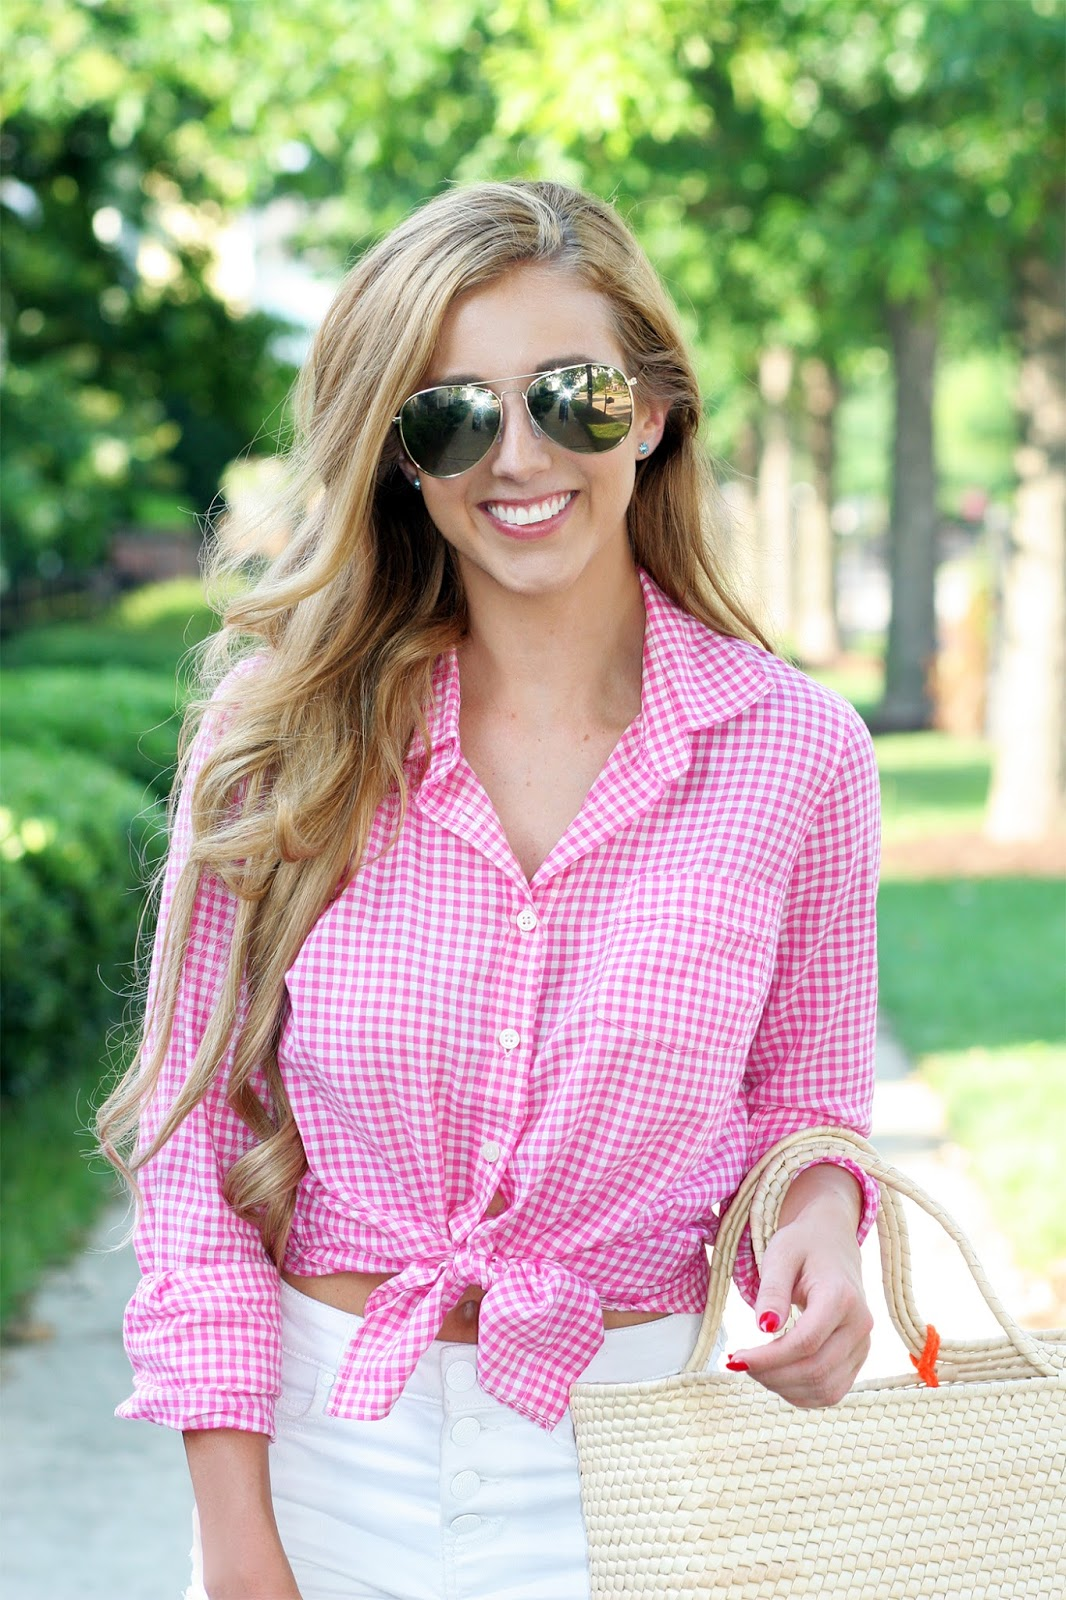 How-to-style-a-tied-button-up-top-effortless-street-style-pink-gingham